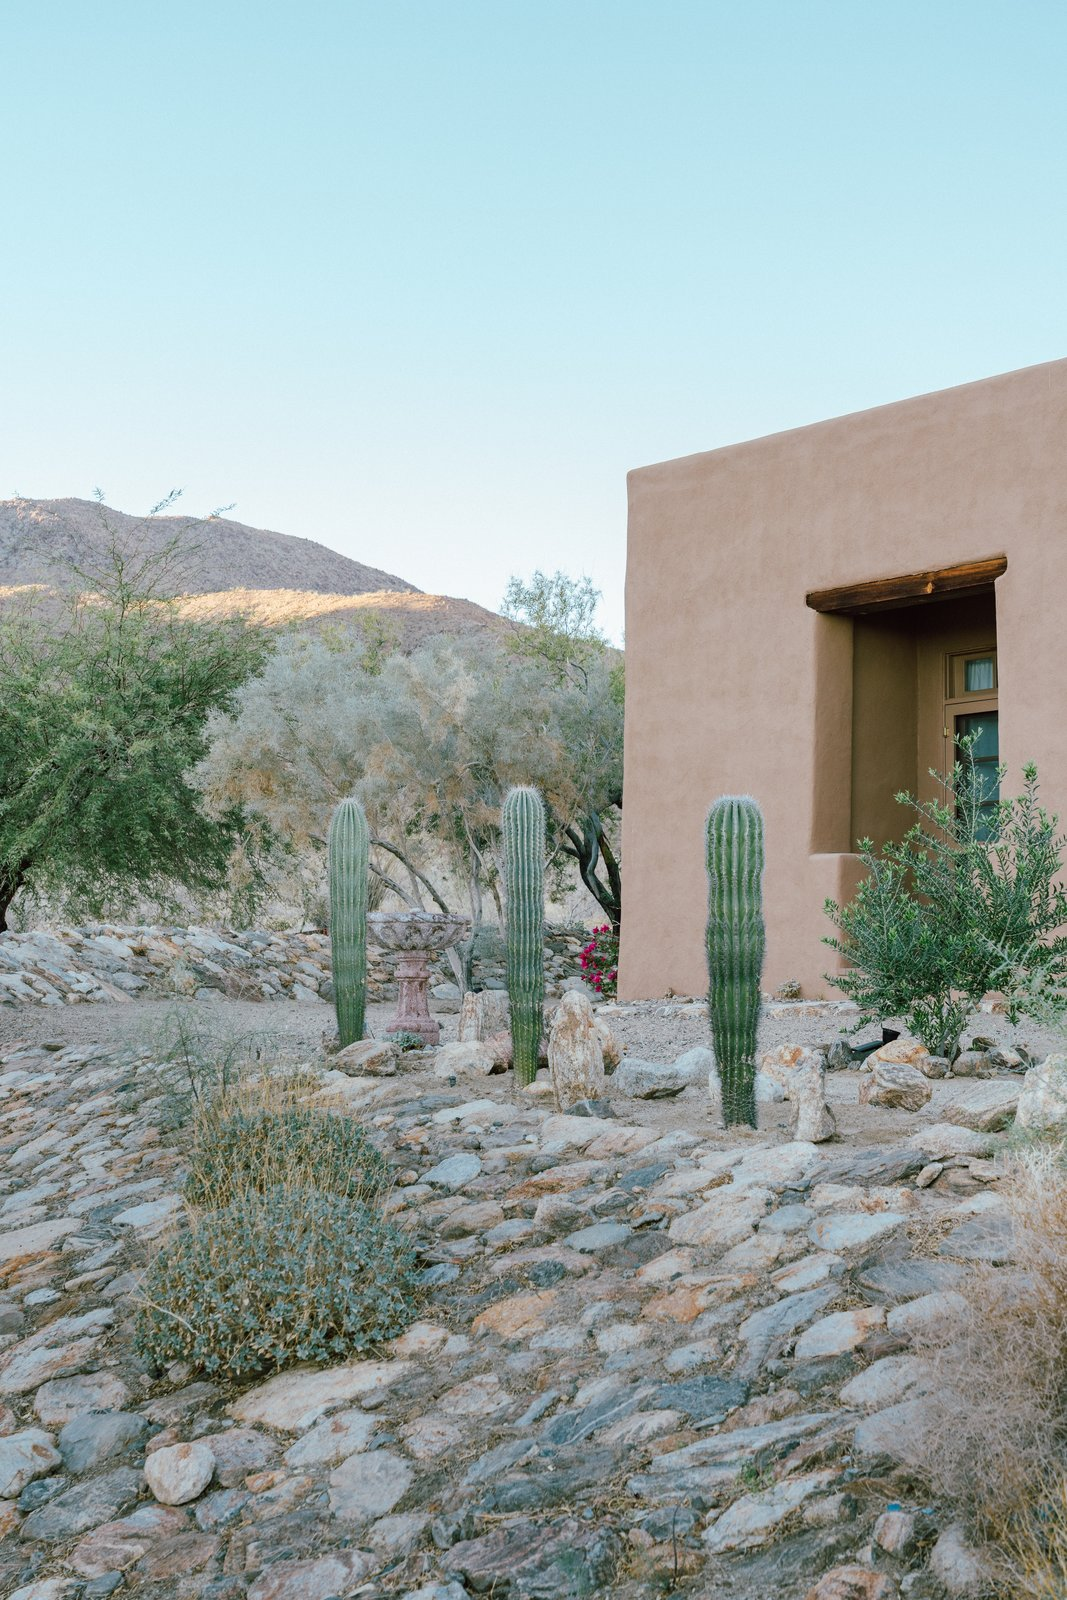 Outside, Young incorporated decomposed granite, native plant species, and large date palms. She moved a lot of rocks around to add to the natural desert feel she wanted for the property. (Tim Melideo)